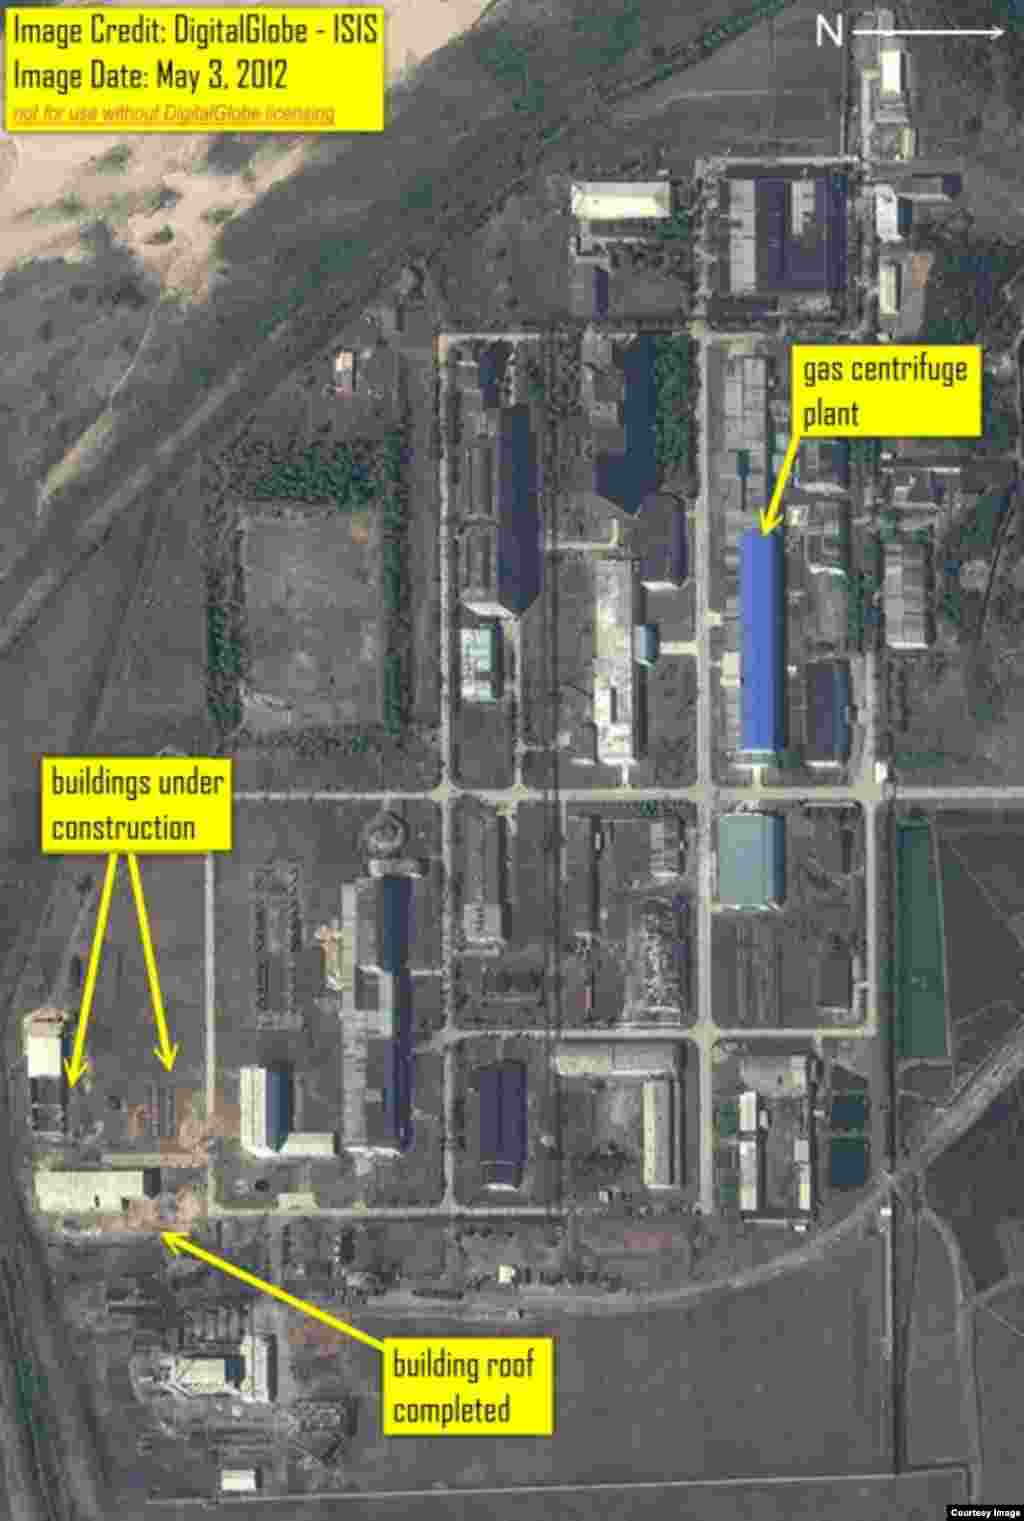 Digital Globe imagery from May 3, 2012 showing building construction in what is the south eastern corner of the fuel fabrication facility.